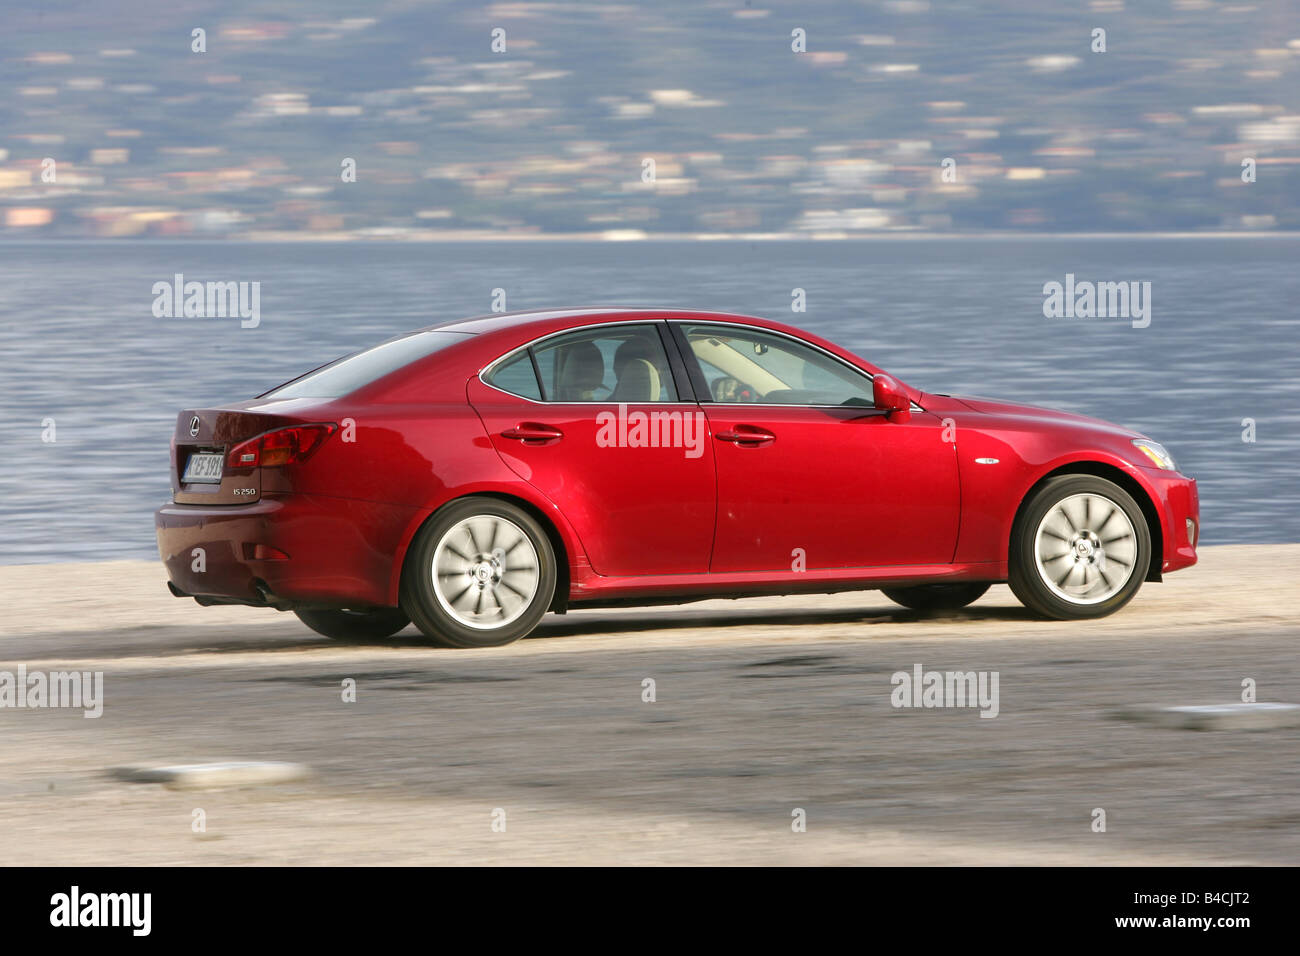 Lexus IS 250, Model Year 2005 , Red, Driving, Side View,